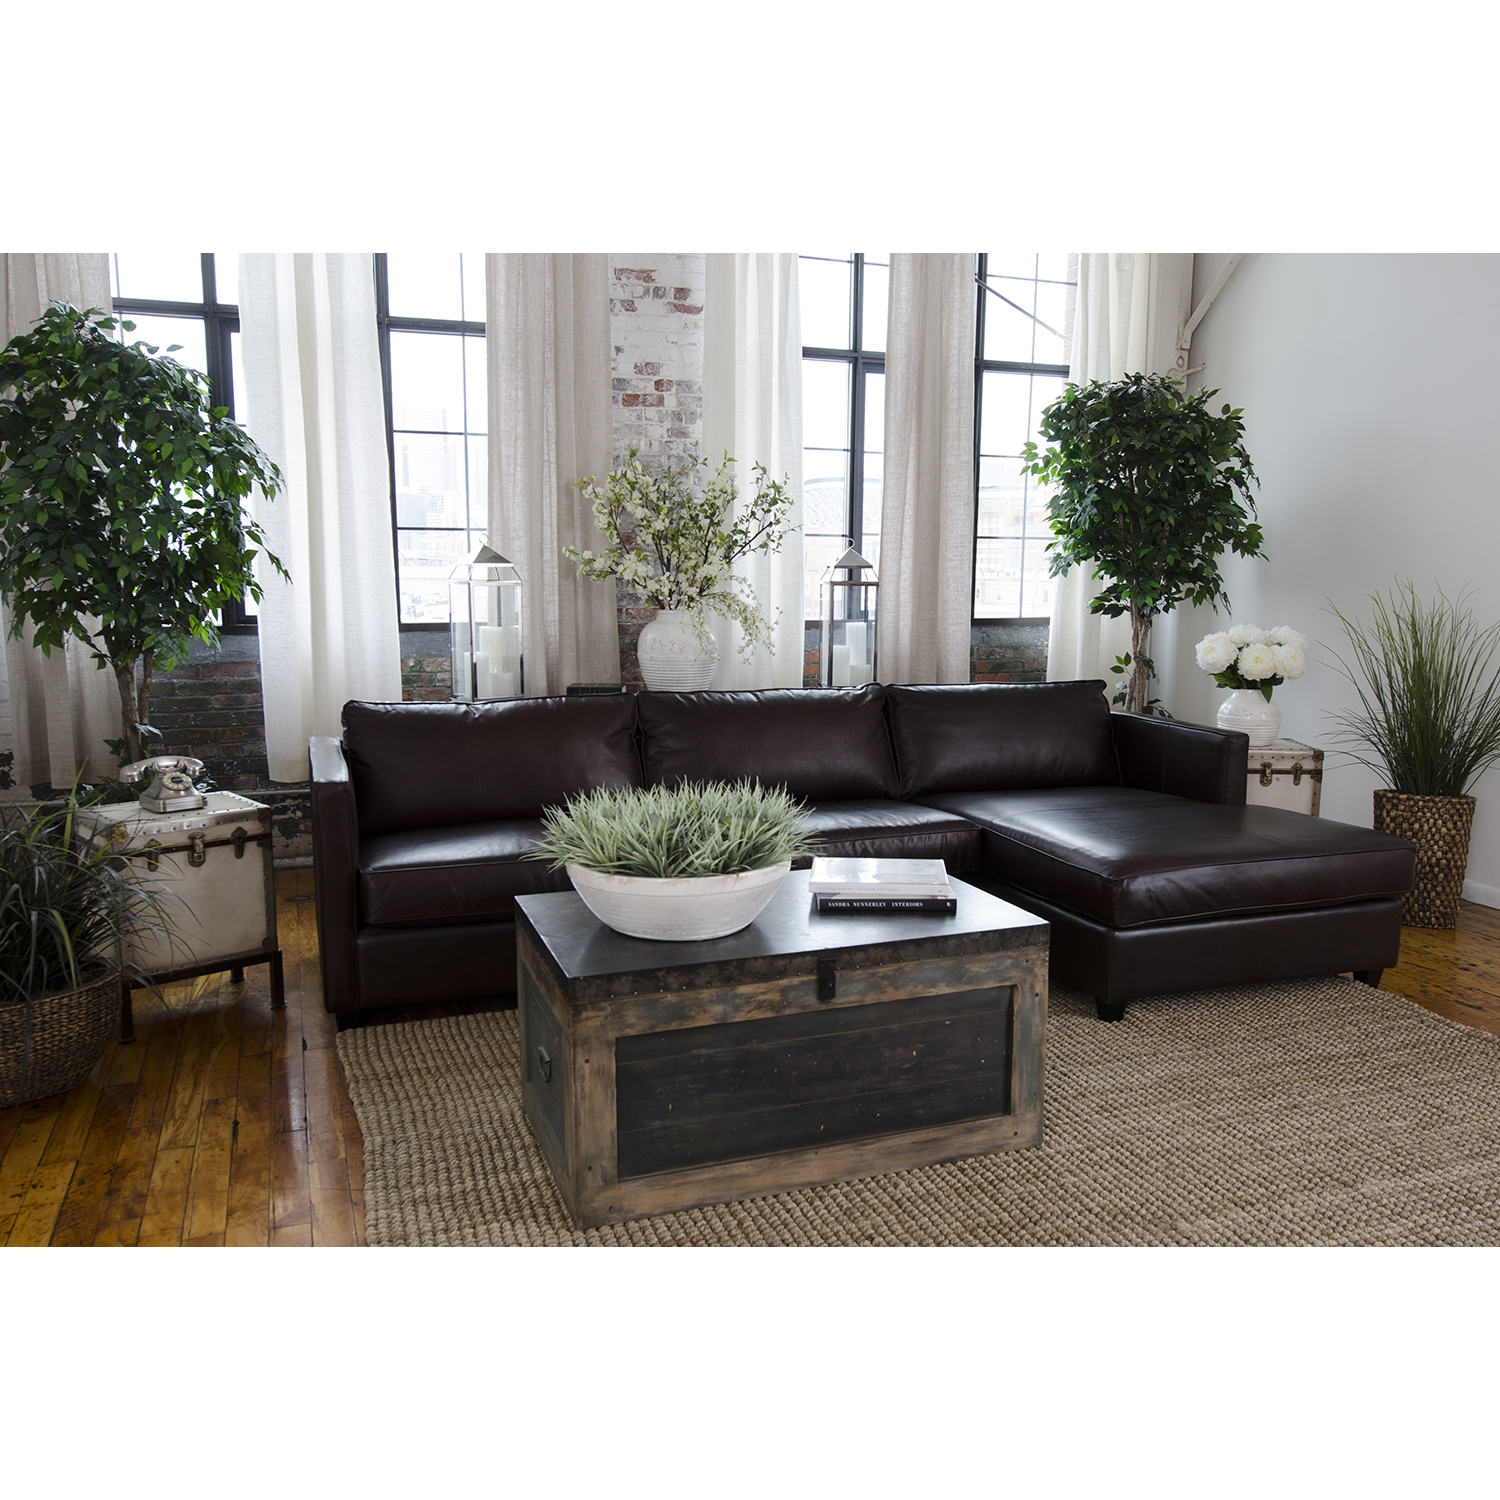 Urban 4-Piece Sectional Set - Right Arm Facing Chaise, Rectangle Ottoman - ELE-URB-4PC-LAFL-RAFC-SC-SC-RCO-CAPP-1